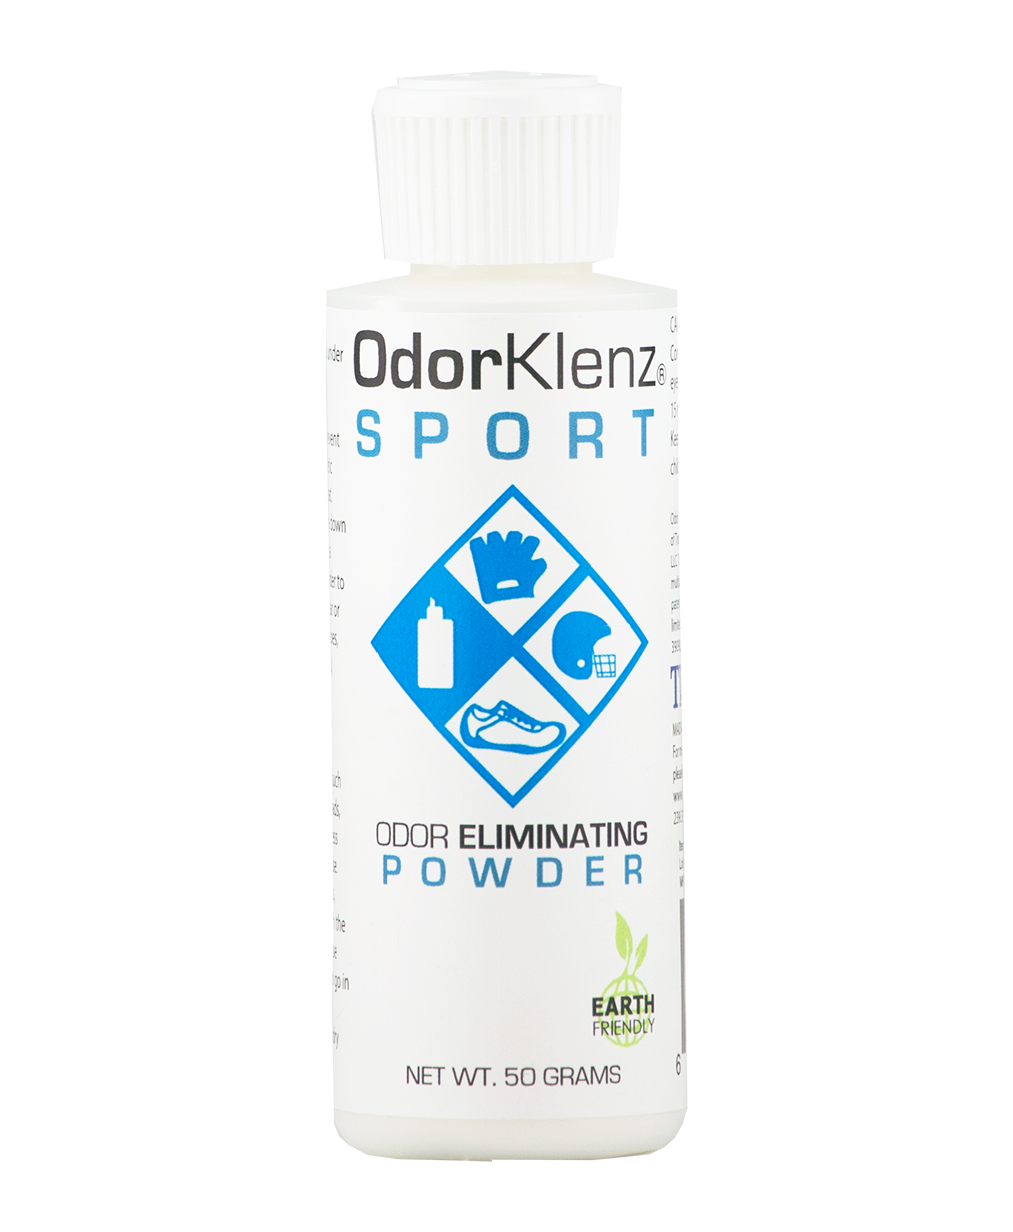 OdorKlenz Sport Powder - Remove Odors From Shoes